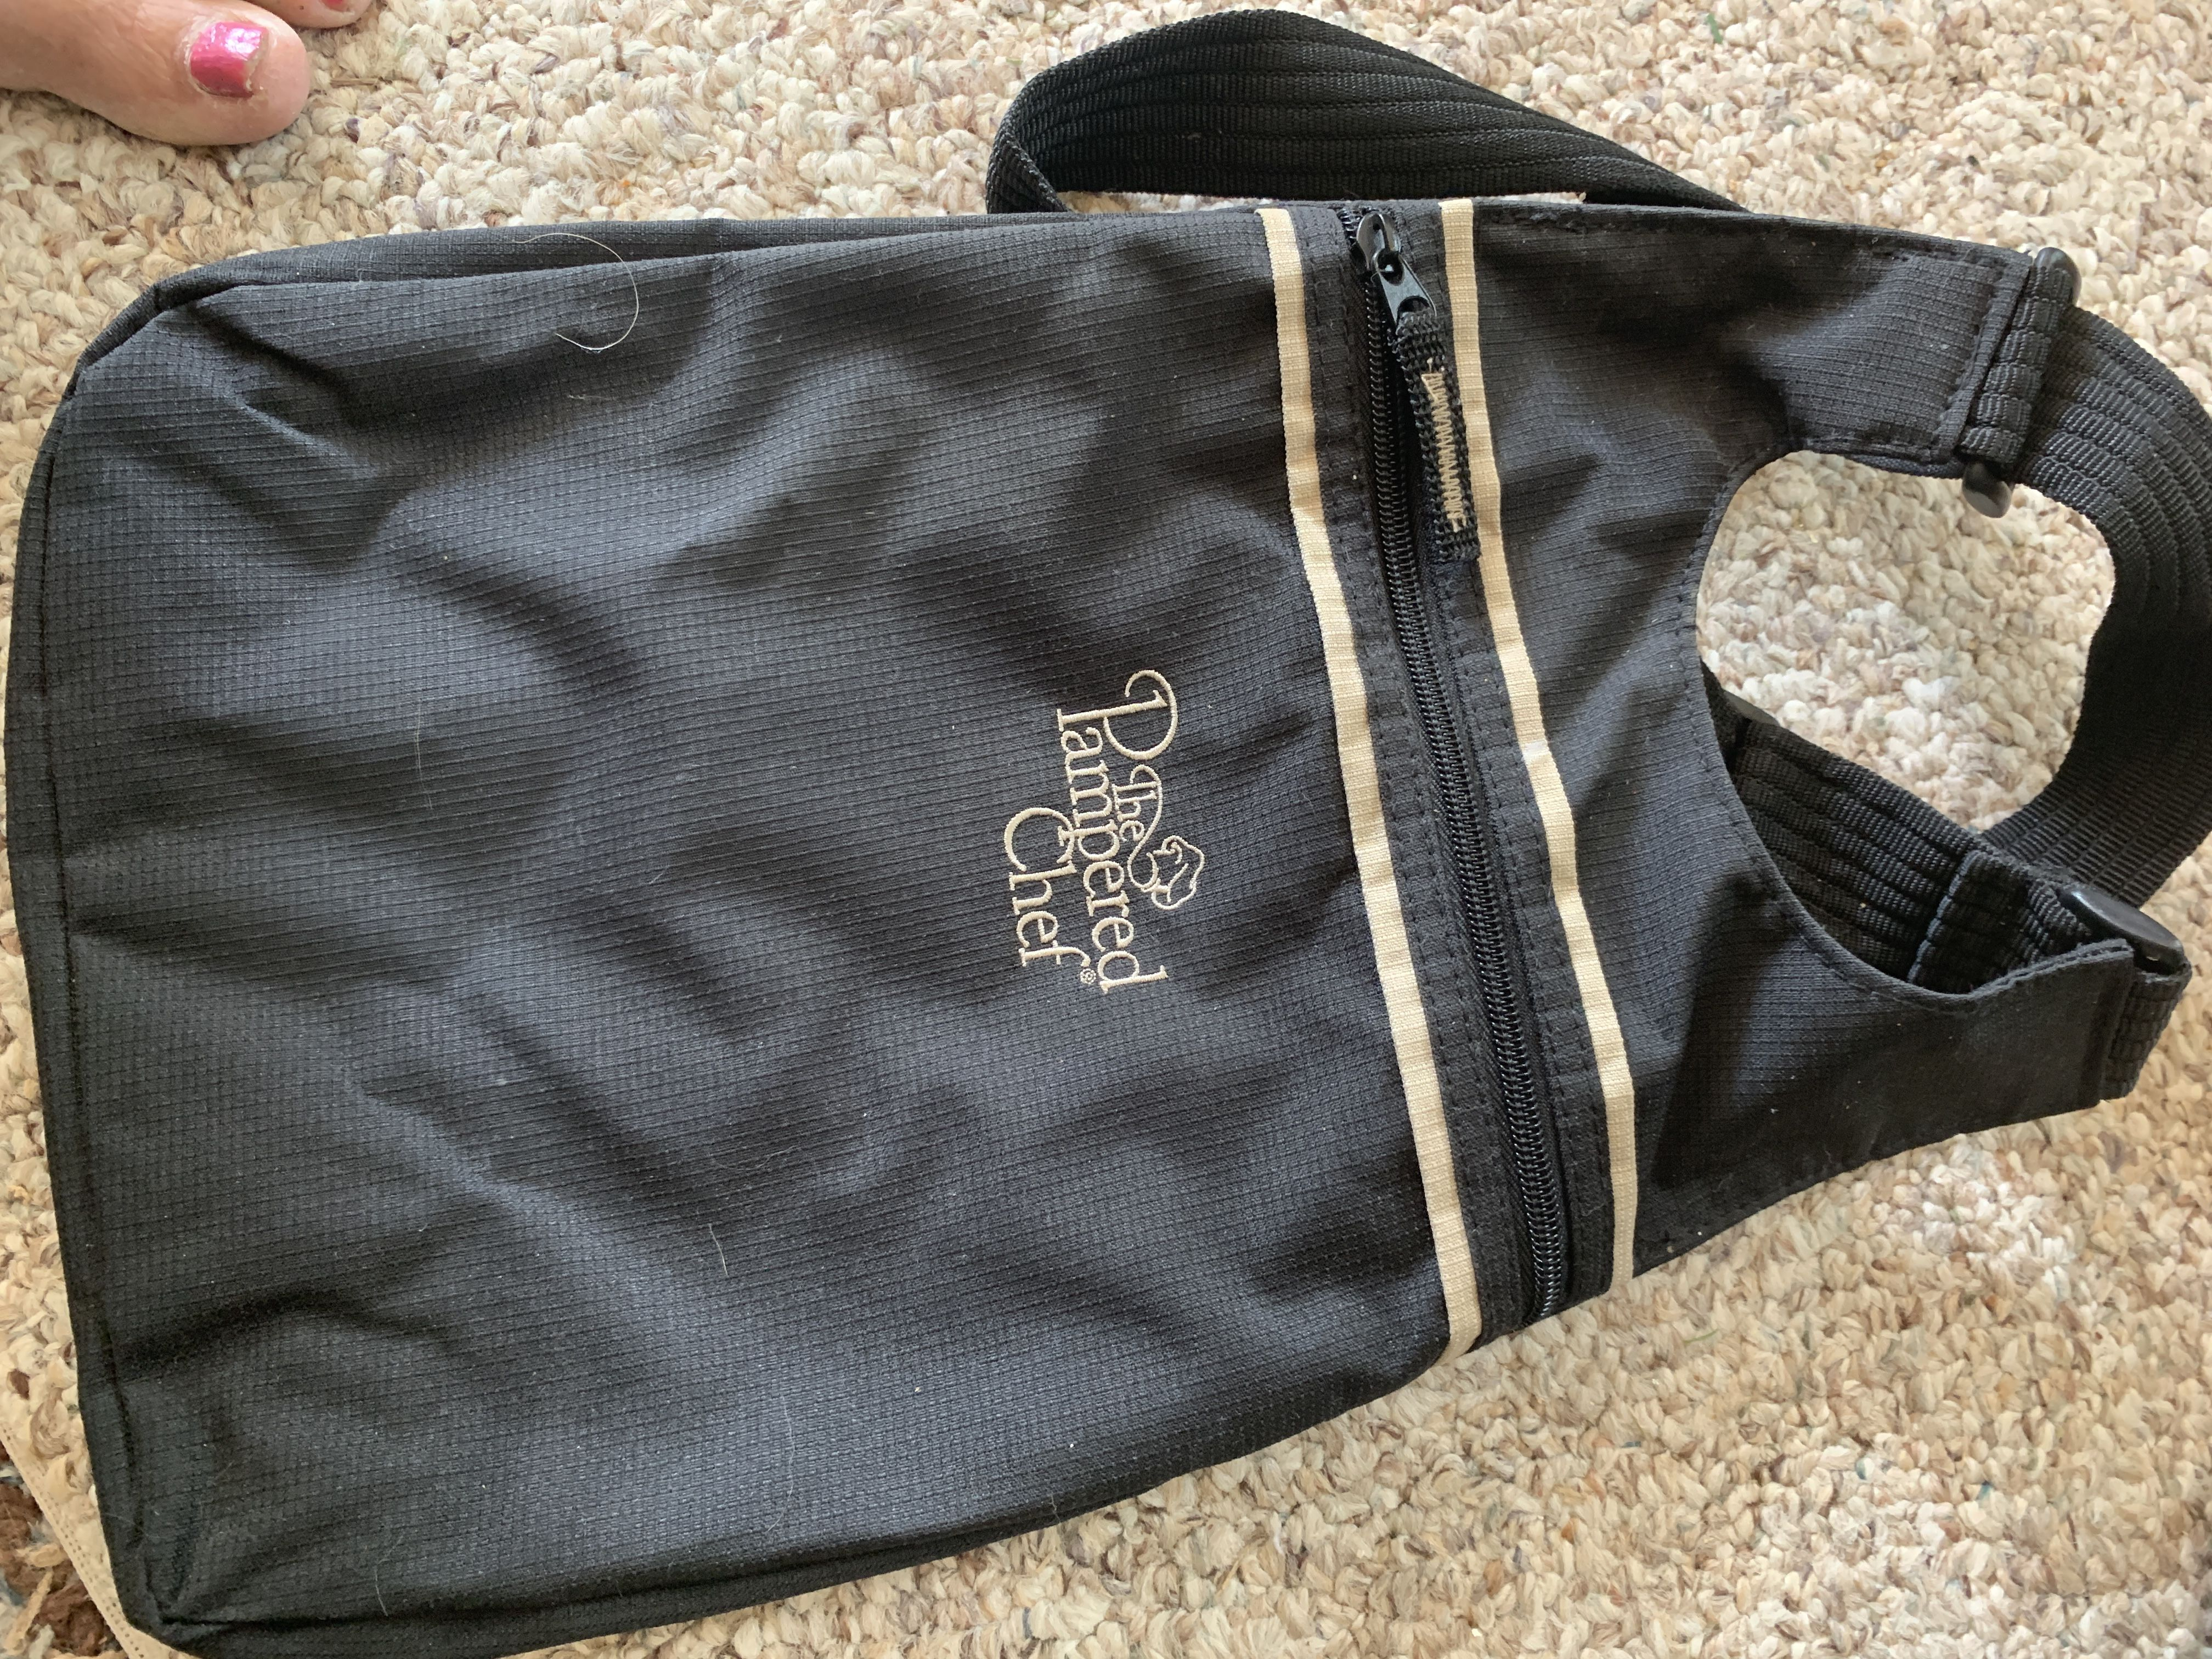 Pampered Chef Tote